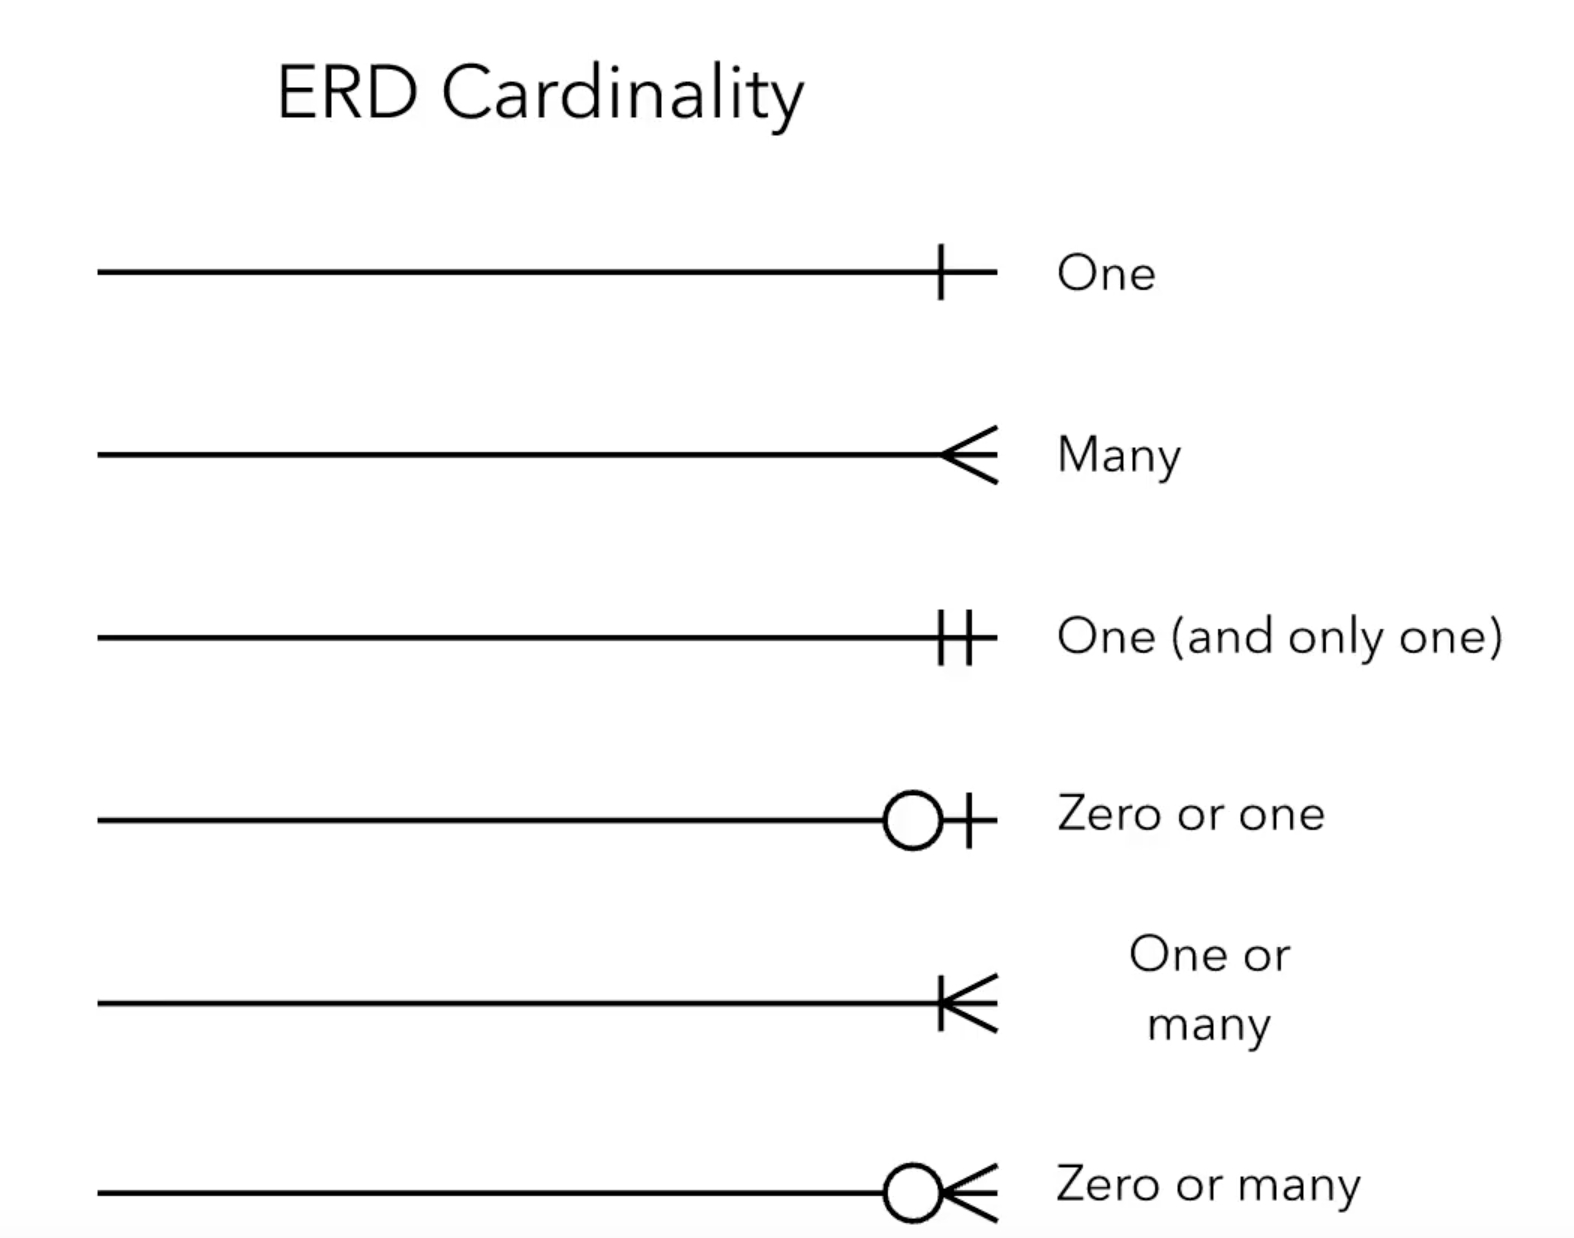 Er Diagram - Are The Relations And Cardinalities Correct intended for Entity Relationship Diagram Cardinality